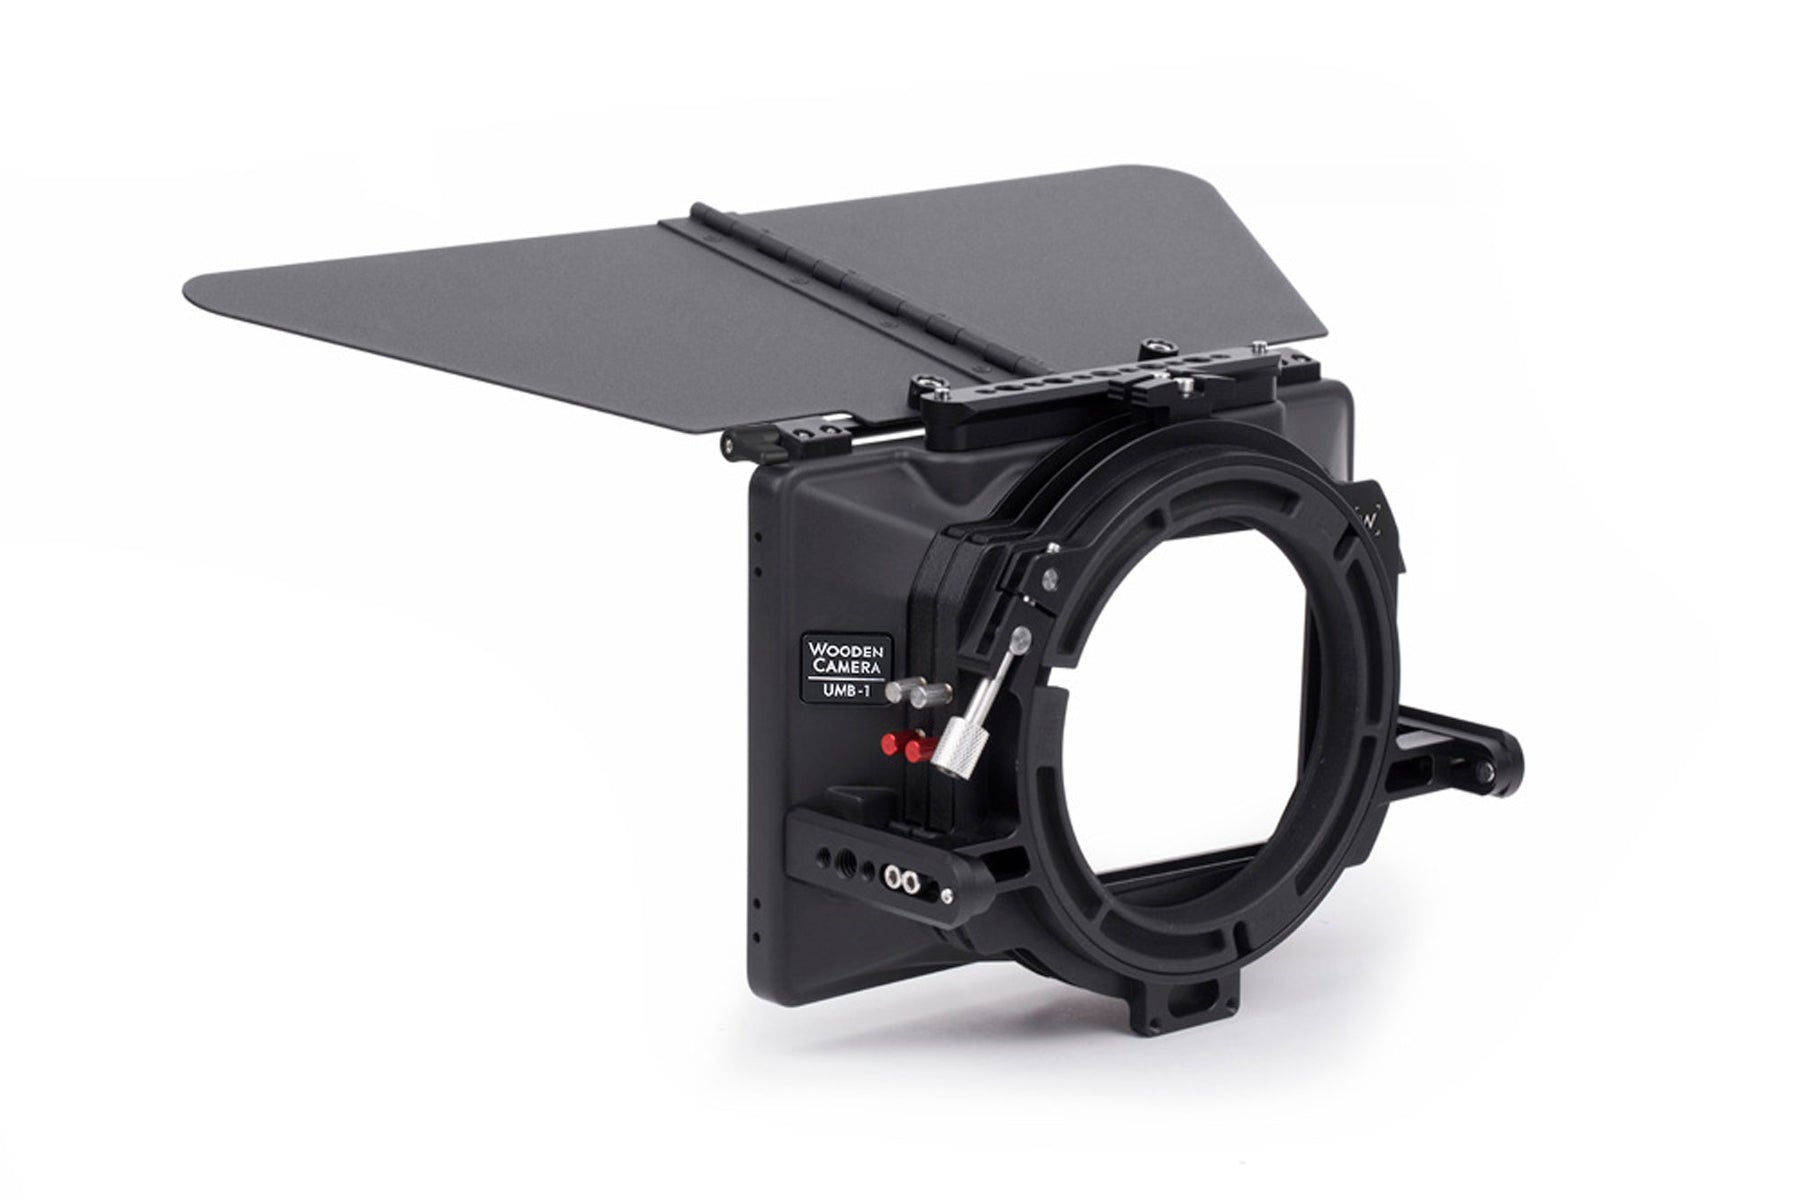 UMB-1 Mattebox Clamp On Ring 143-125mm Wooden Camera